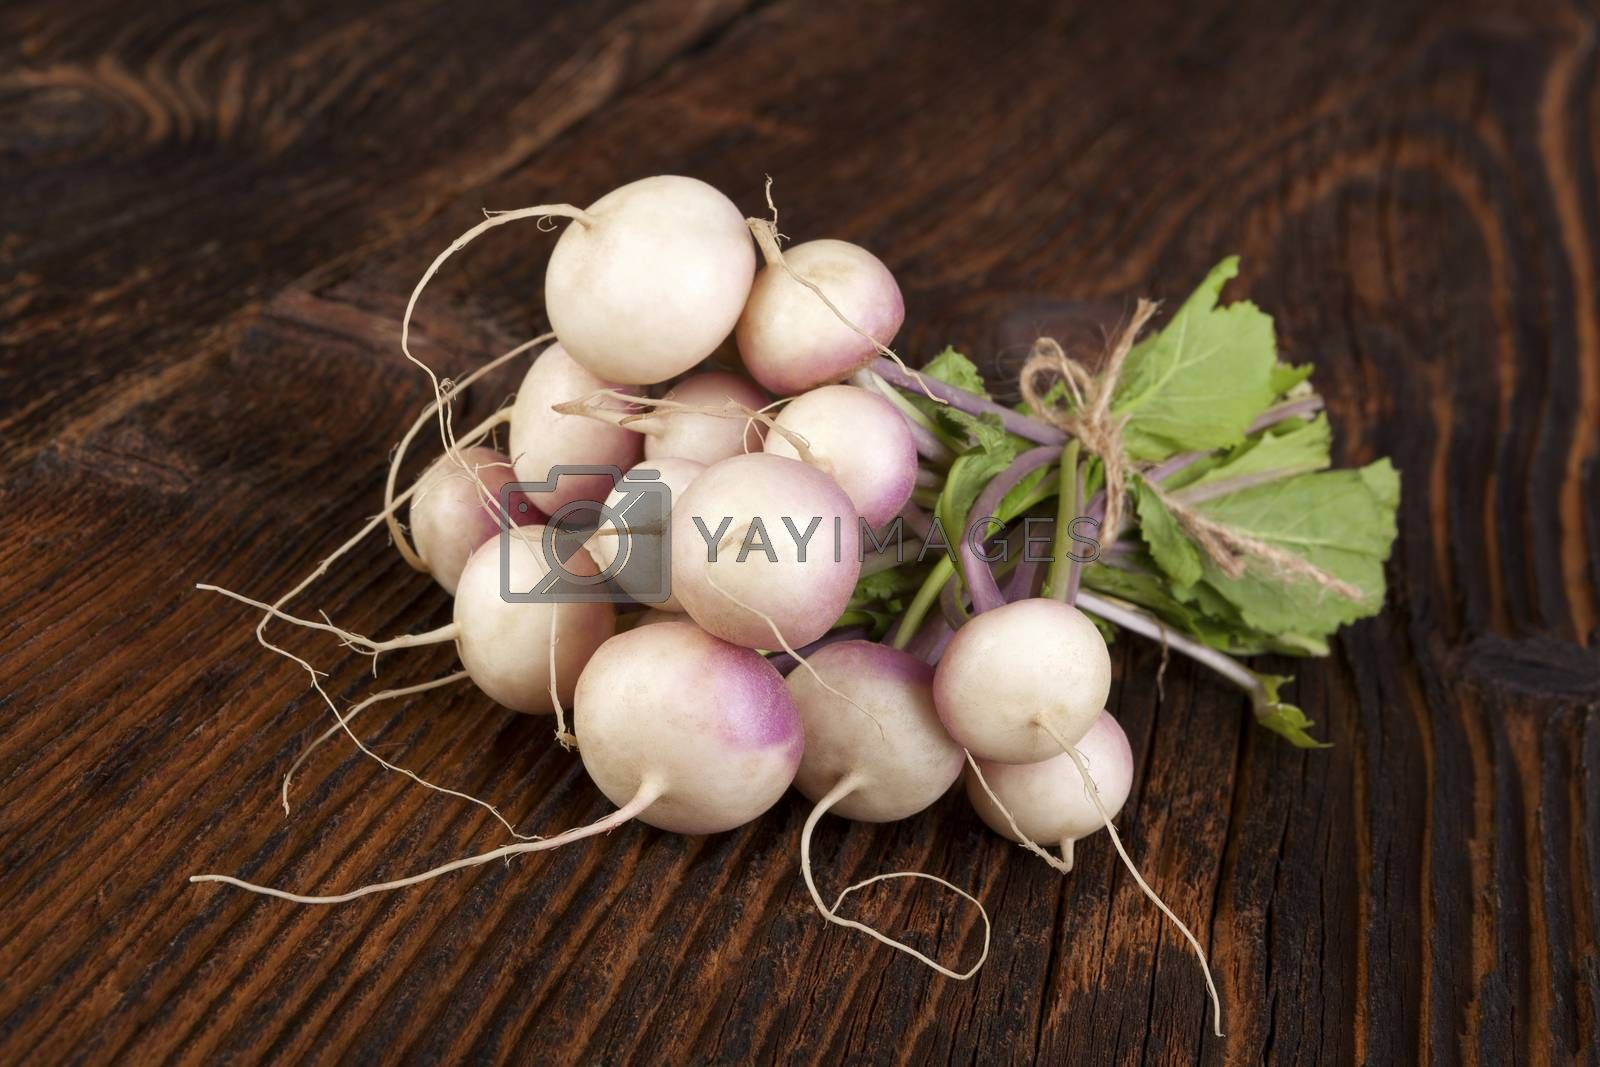 Ripe fresh radish bundle on wooden background. Seasonal organic vegetable harvest. Farmer market.